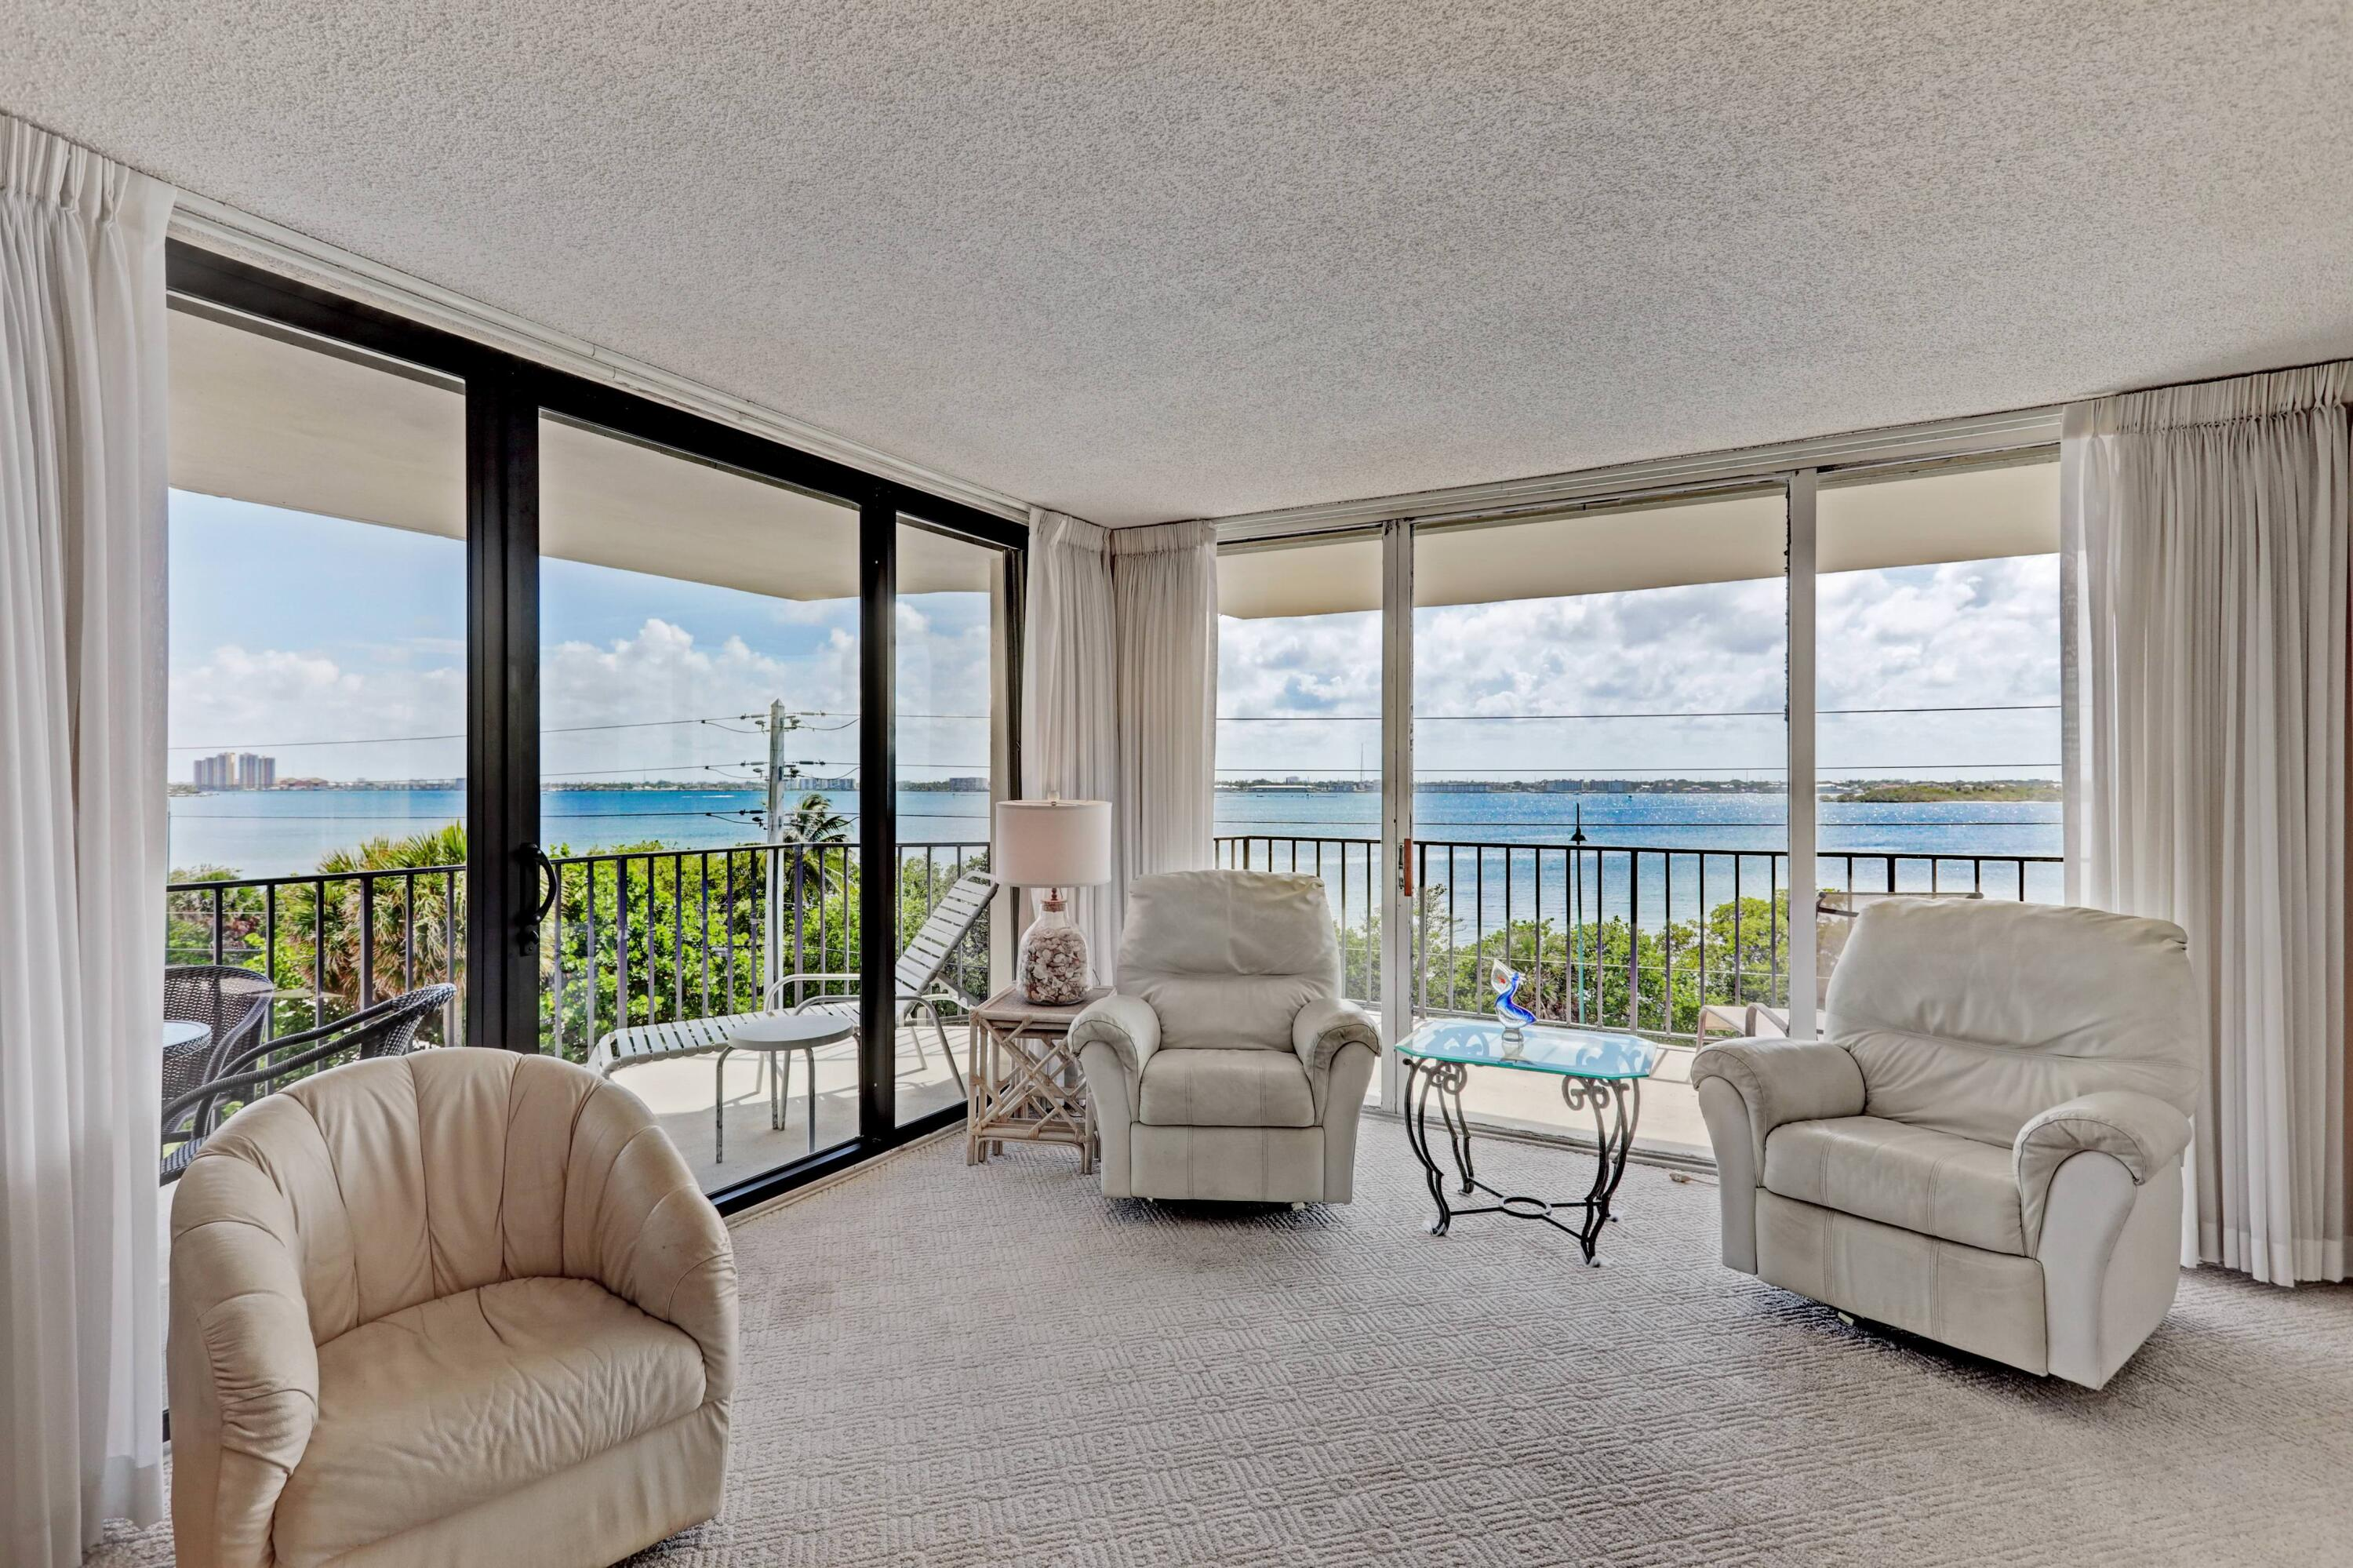 LOW FLOOR BEAUTY OVER LOOKING THE INTERCOSTAL WATERWAYS WITH THE MOST STUNNING SUNSETS  YOU HAVE EVER SEEN. SEE THE BLUE ATLANTIC OCEAN FROM YOUR WRAP AROUND BALCONY. ONLY 4 UNITS PER FLOOR,2 BEDROOM ,2 BATH UNIT. 2 WALK IN CLOSETS, WAITING FOR YOUR PERSONAL TOUCH TO MAKE THIS A ONE OF A KIND. 800 FEET OF SANDY BEACH AT YOUR FOOTSTEPS,POOL,CLUBHOUSE ,BBQ AREA, FITNESS CENTER